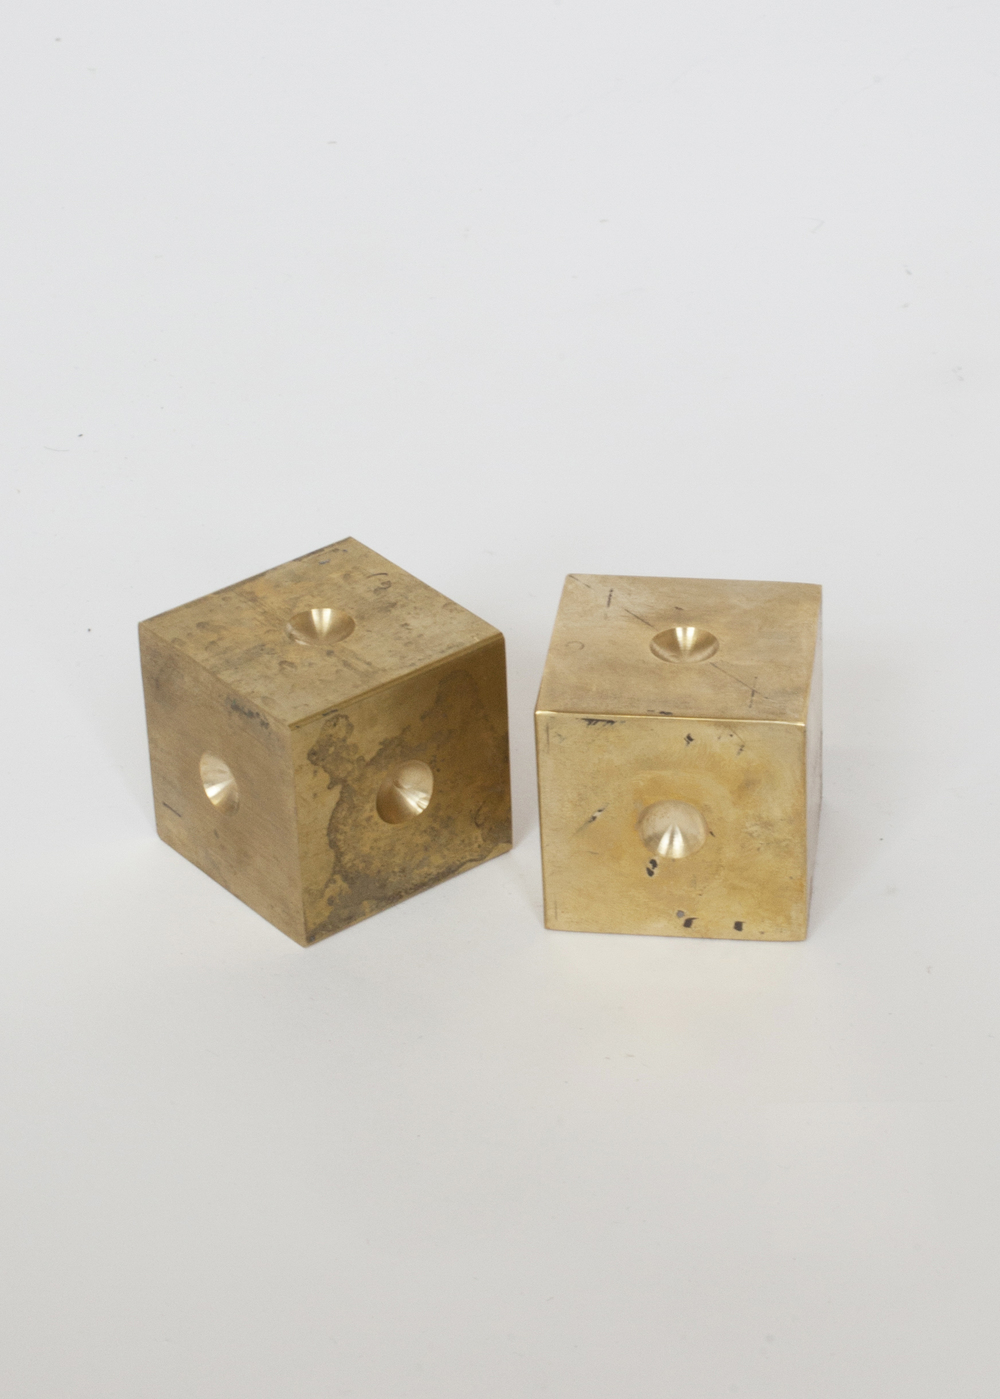 "PAPER WEIGHT  1 of 1  BRASS 2""W x 2""D x 2""H   INQUIRE TO PURCHASE    IN STOCK"